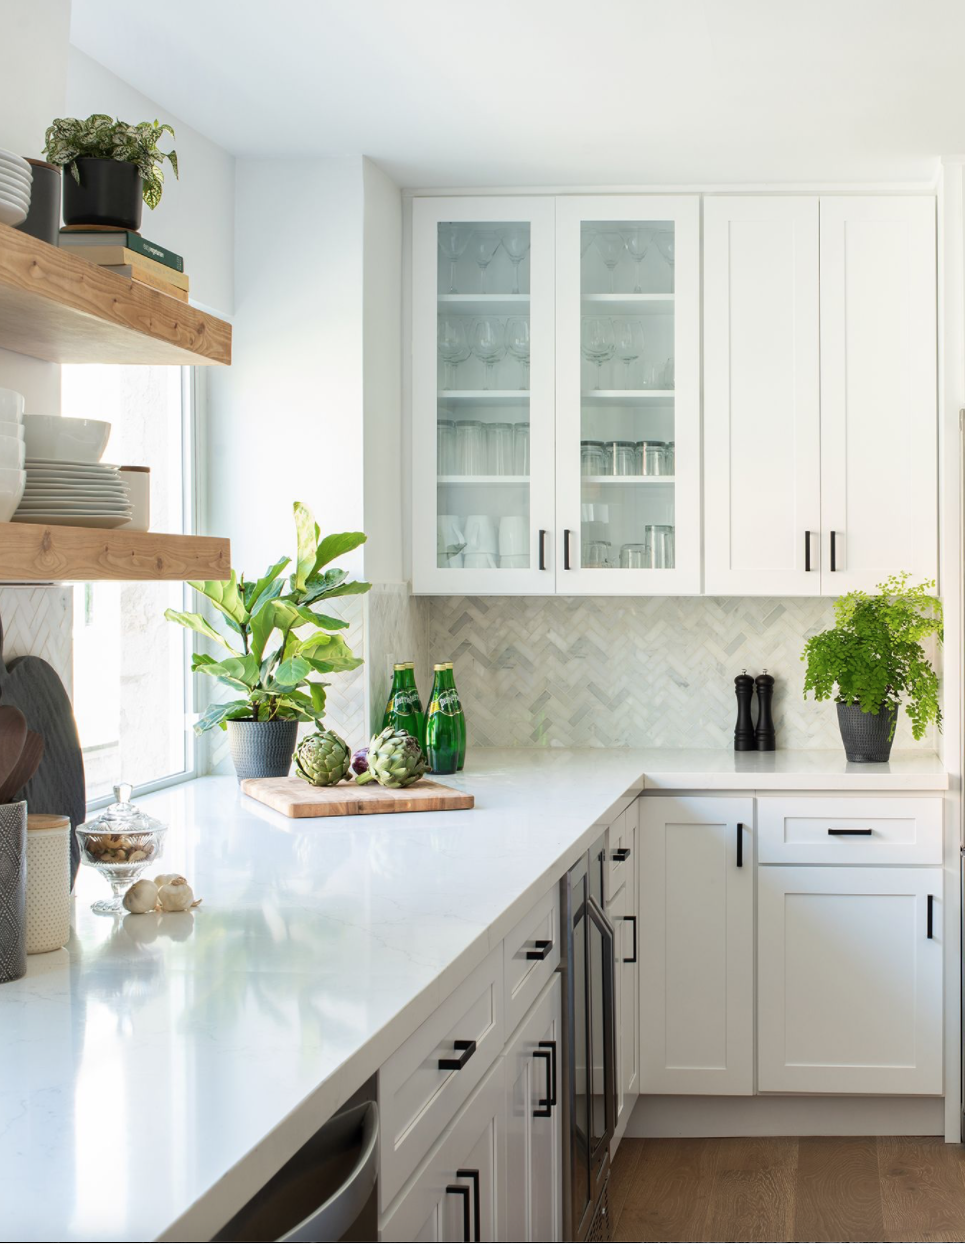 Top 7 Kitchen Trends For 2020 We Love These